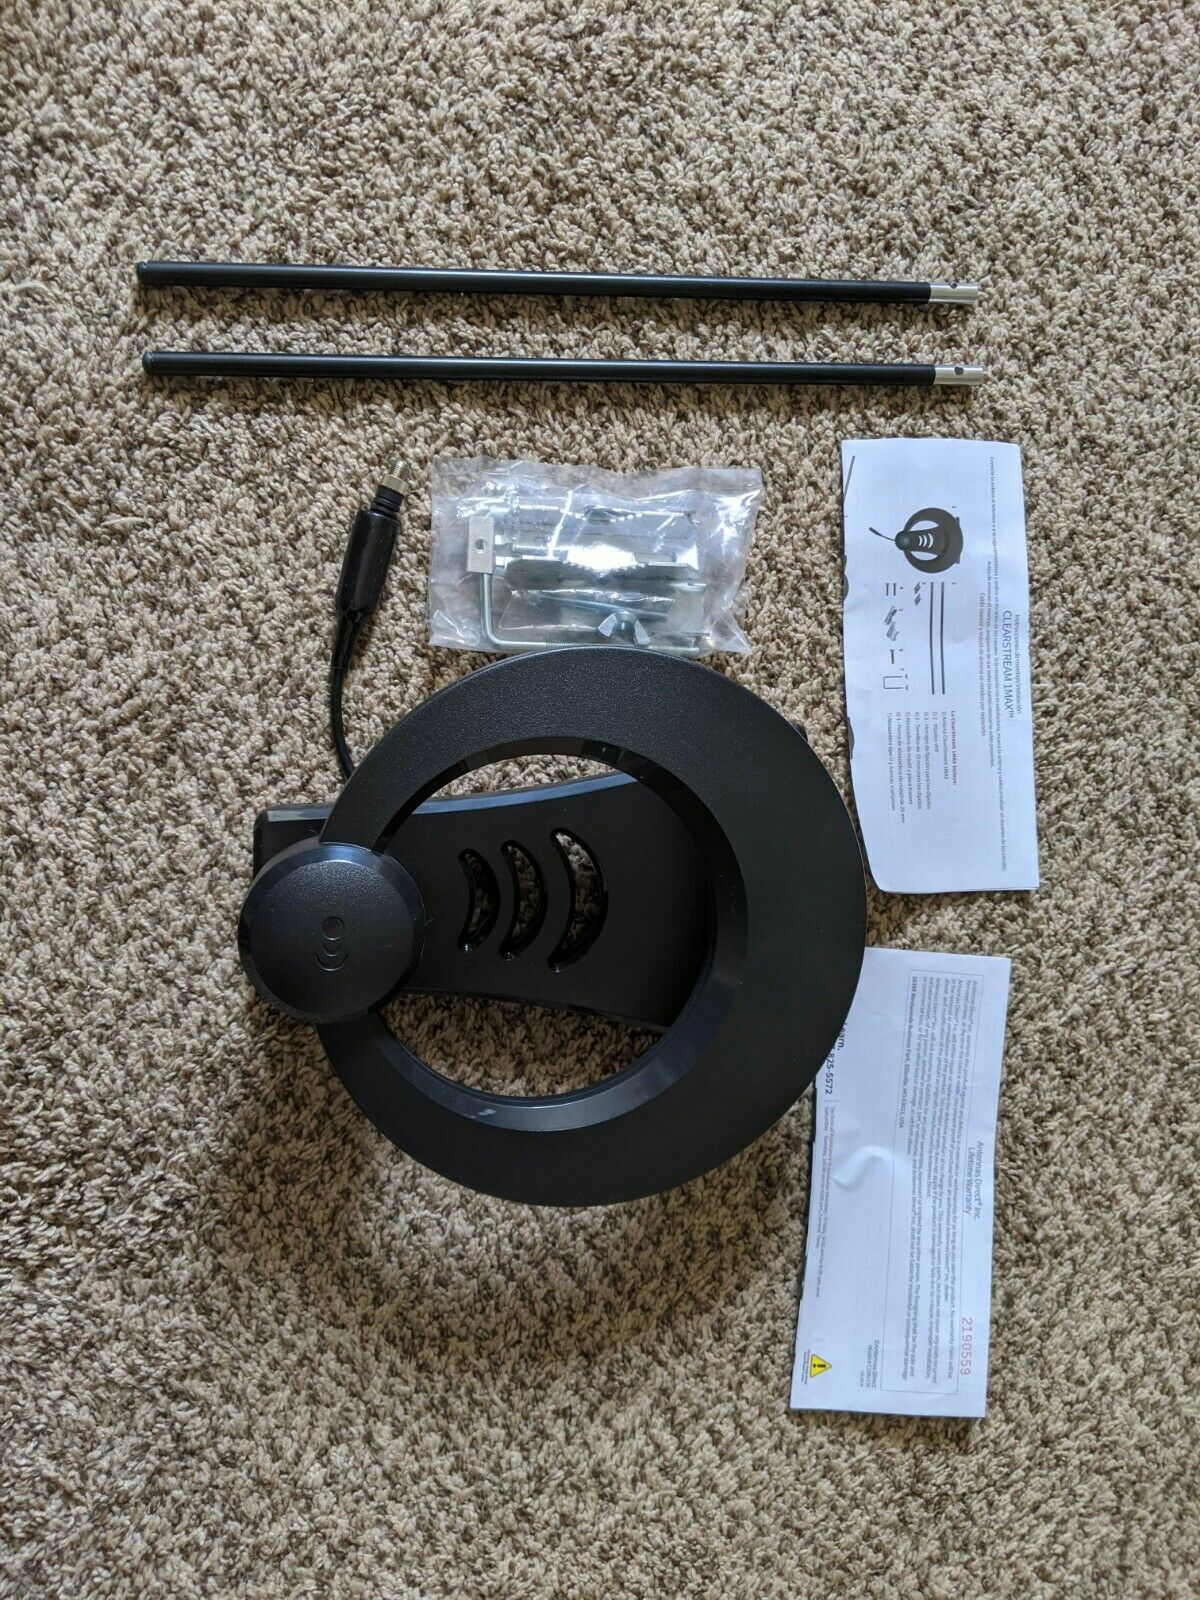 Antennas Direct ClearStream 1MAX Indoor/Outdoor Multidirectional TV Antenna. Available Now for 15.94